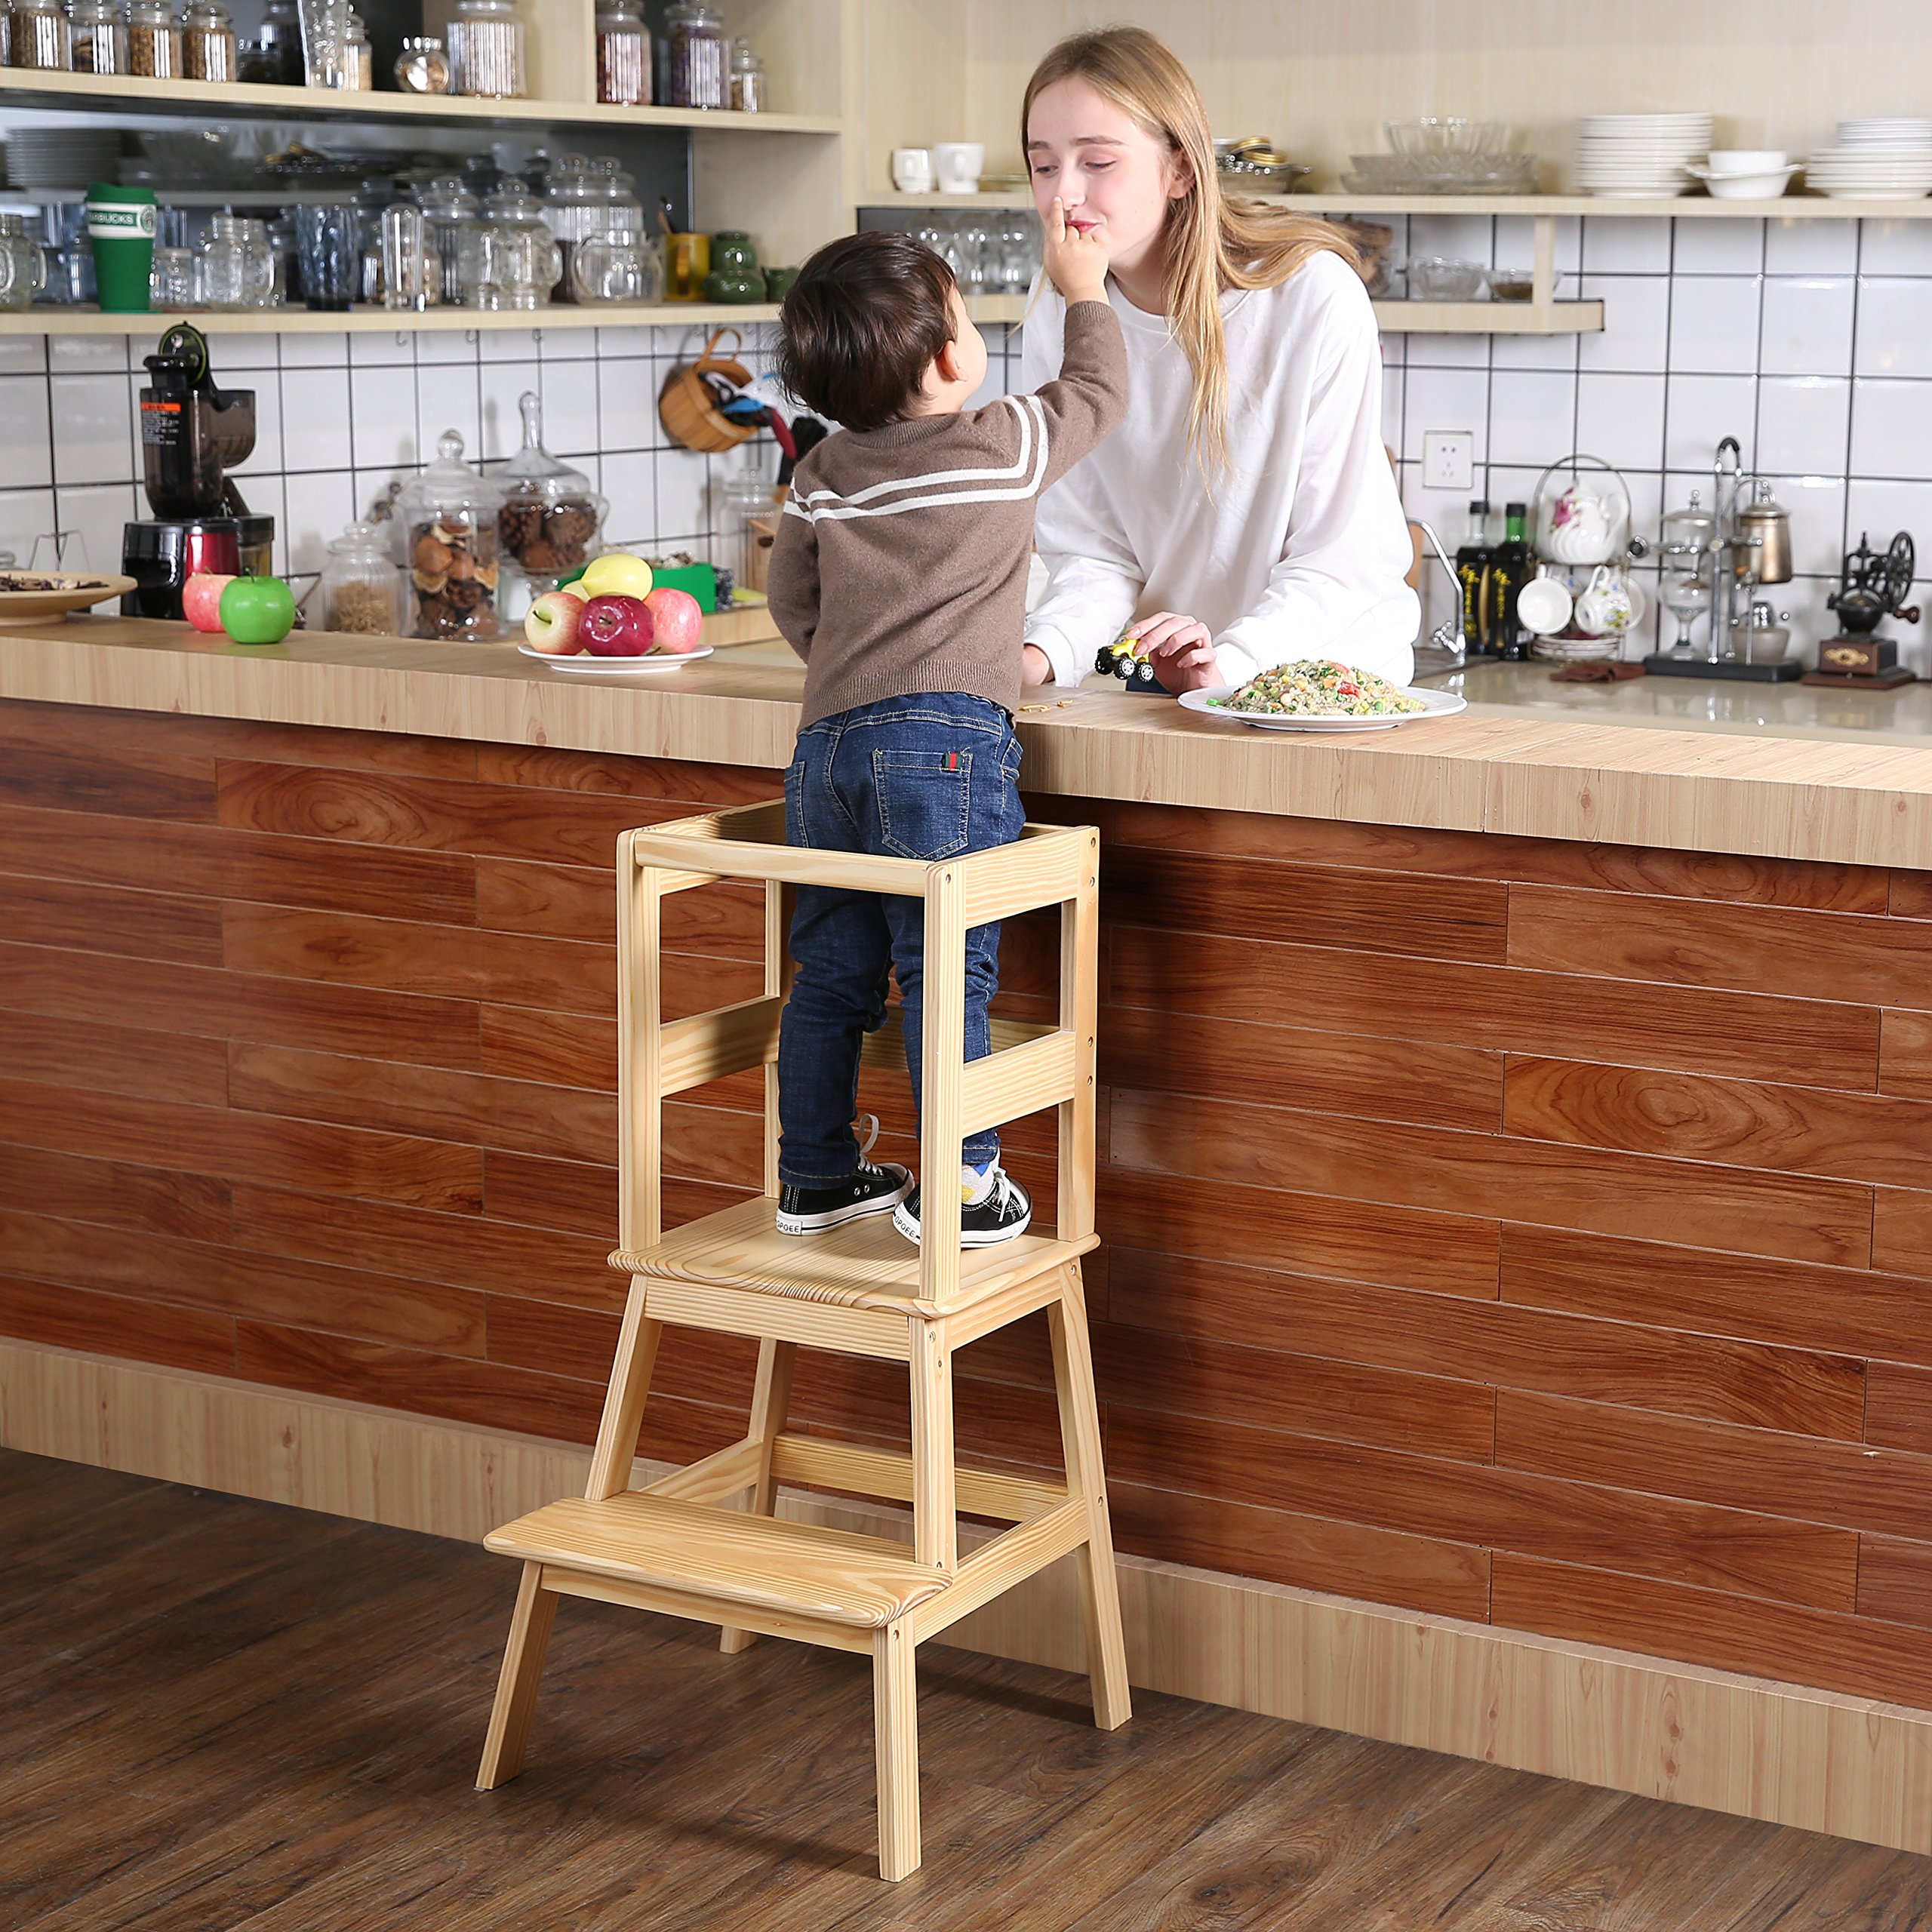 Kids Kitchen Helper Kitchen Step Stool With Safety Rail   For Toddlers 18  Months And Older